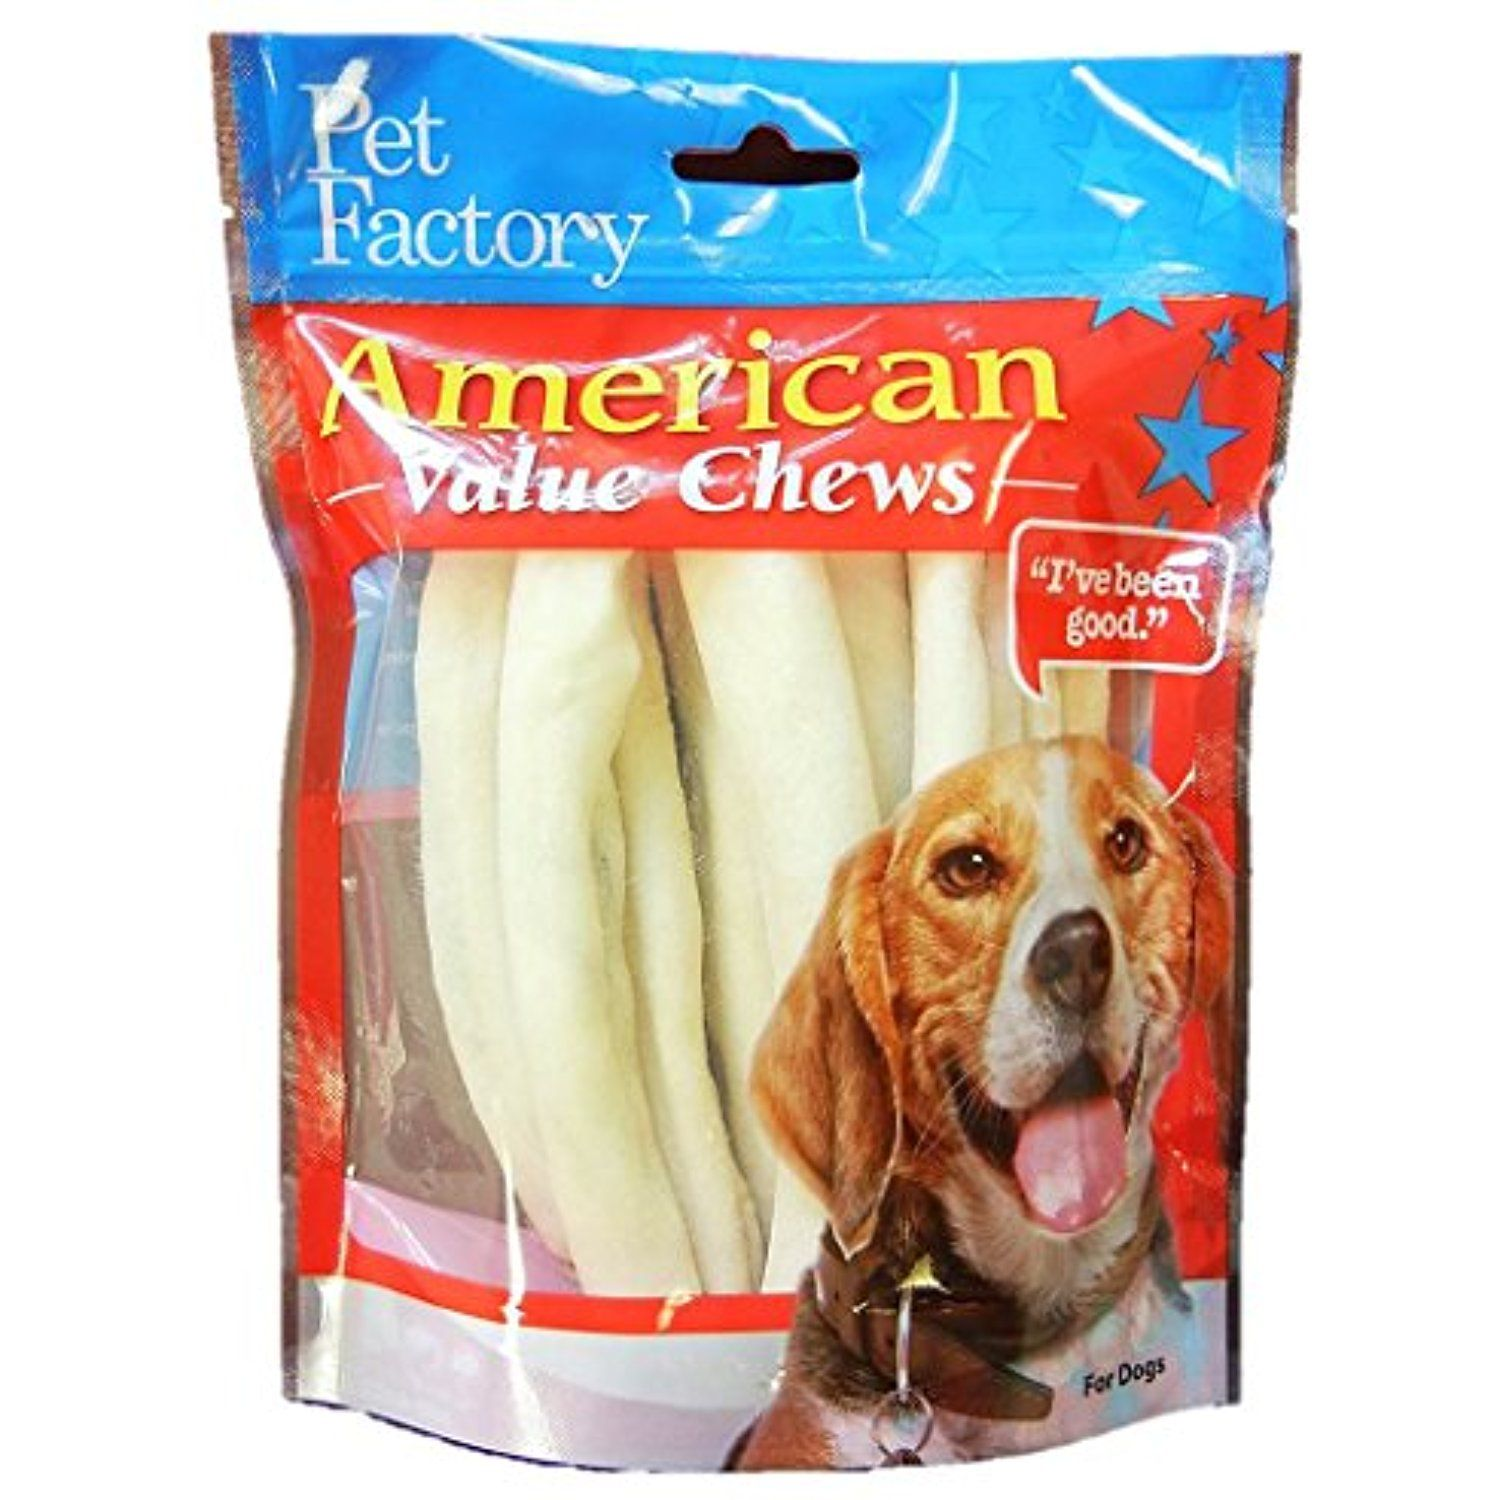 Pet Factory American Beef Hide Chip Rolls Chews For Dogs 8 Pack